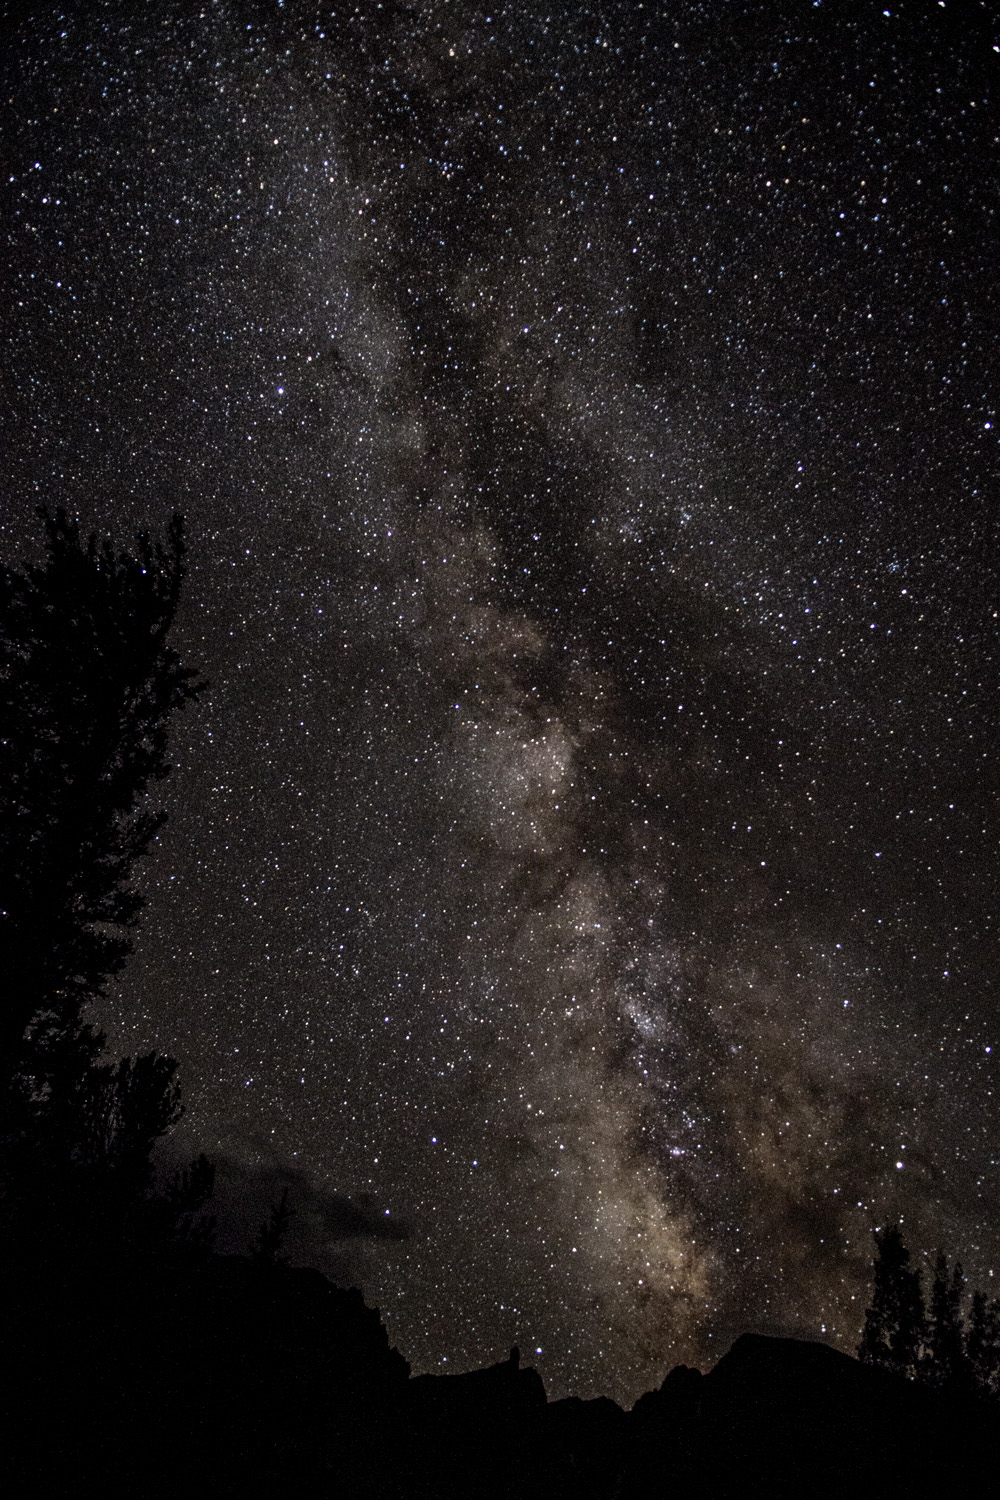 The Milky Way over Great Basin National Park. Taken from Wheeler Peak Campground at about 10,000 feet. The mountain at the lower right is Wheeler Peak.